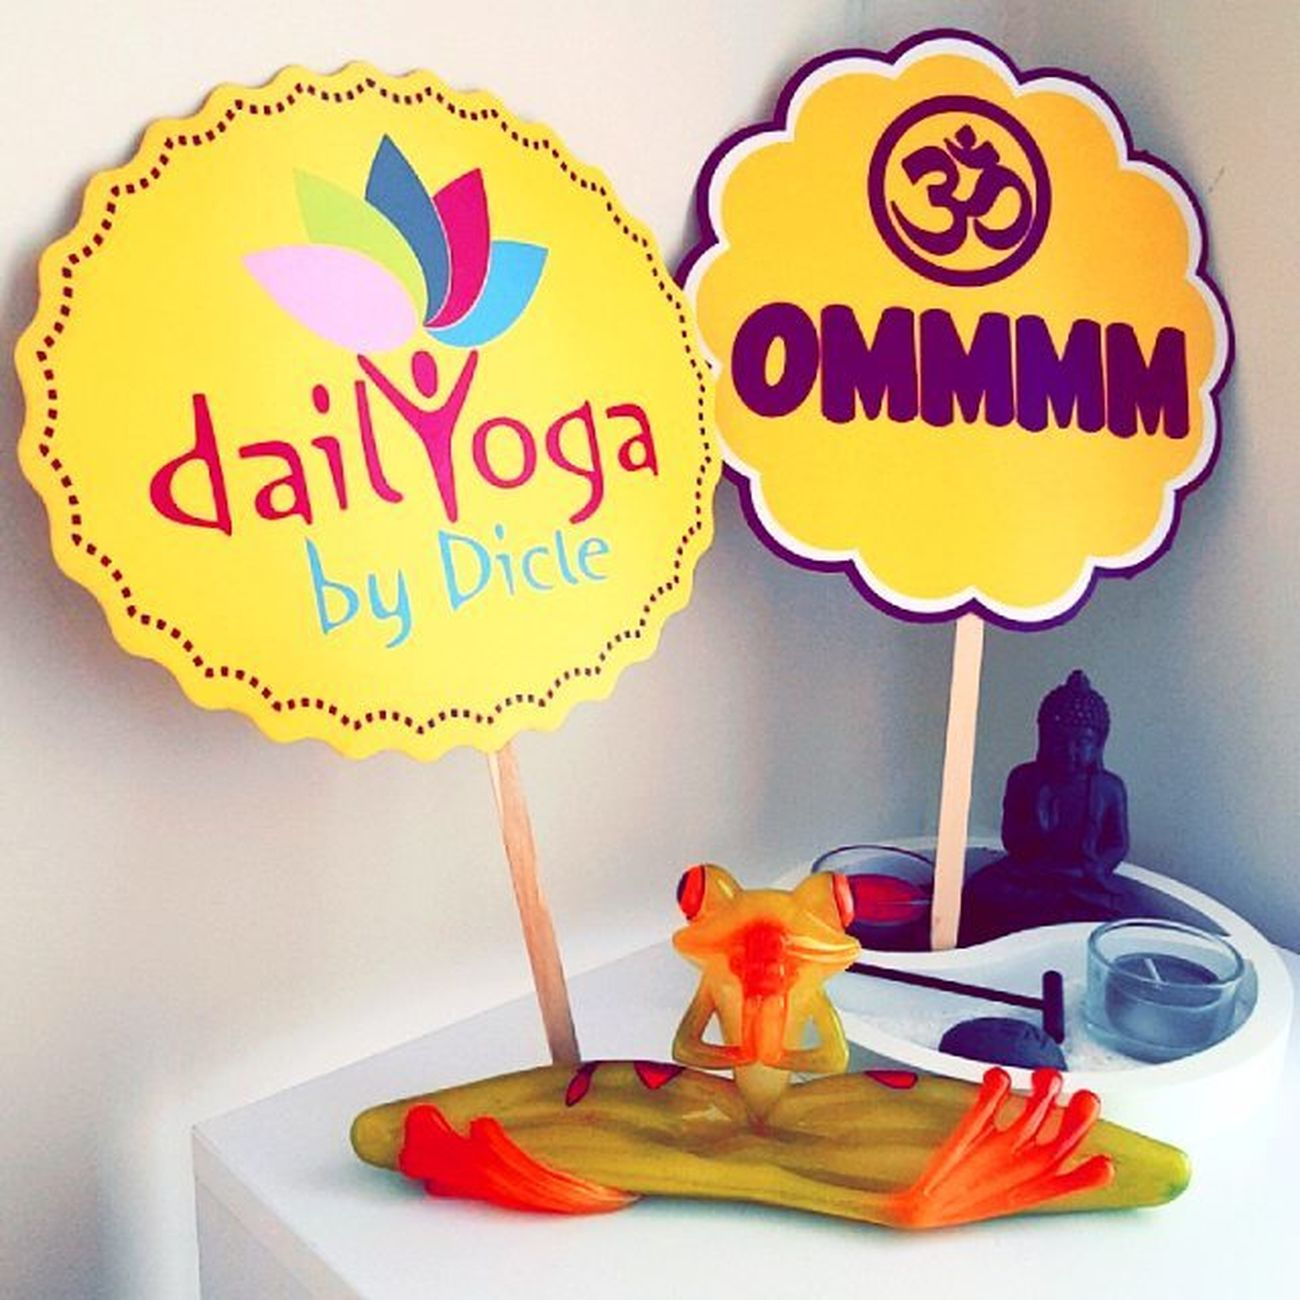 One hour Yoga is only %4 of your day. No excuses. Dailyogabydicle Yoga Yogadaily Yogaeverywhere Yogaeverydamnday Namaste Aycyambassador Yogalife Work Yogateacher Best  Goodmorning Askileyap